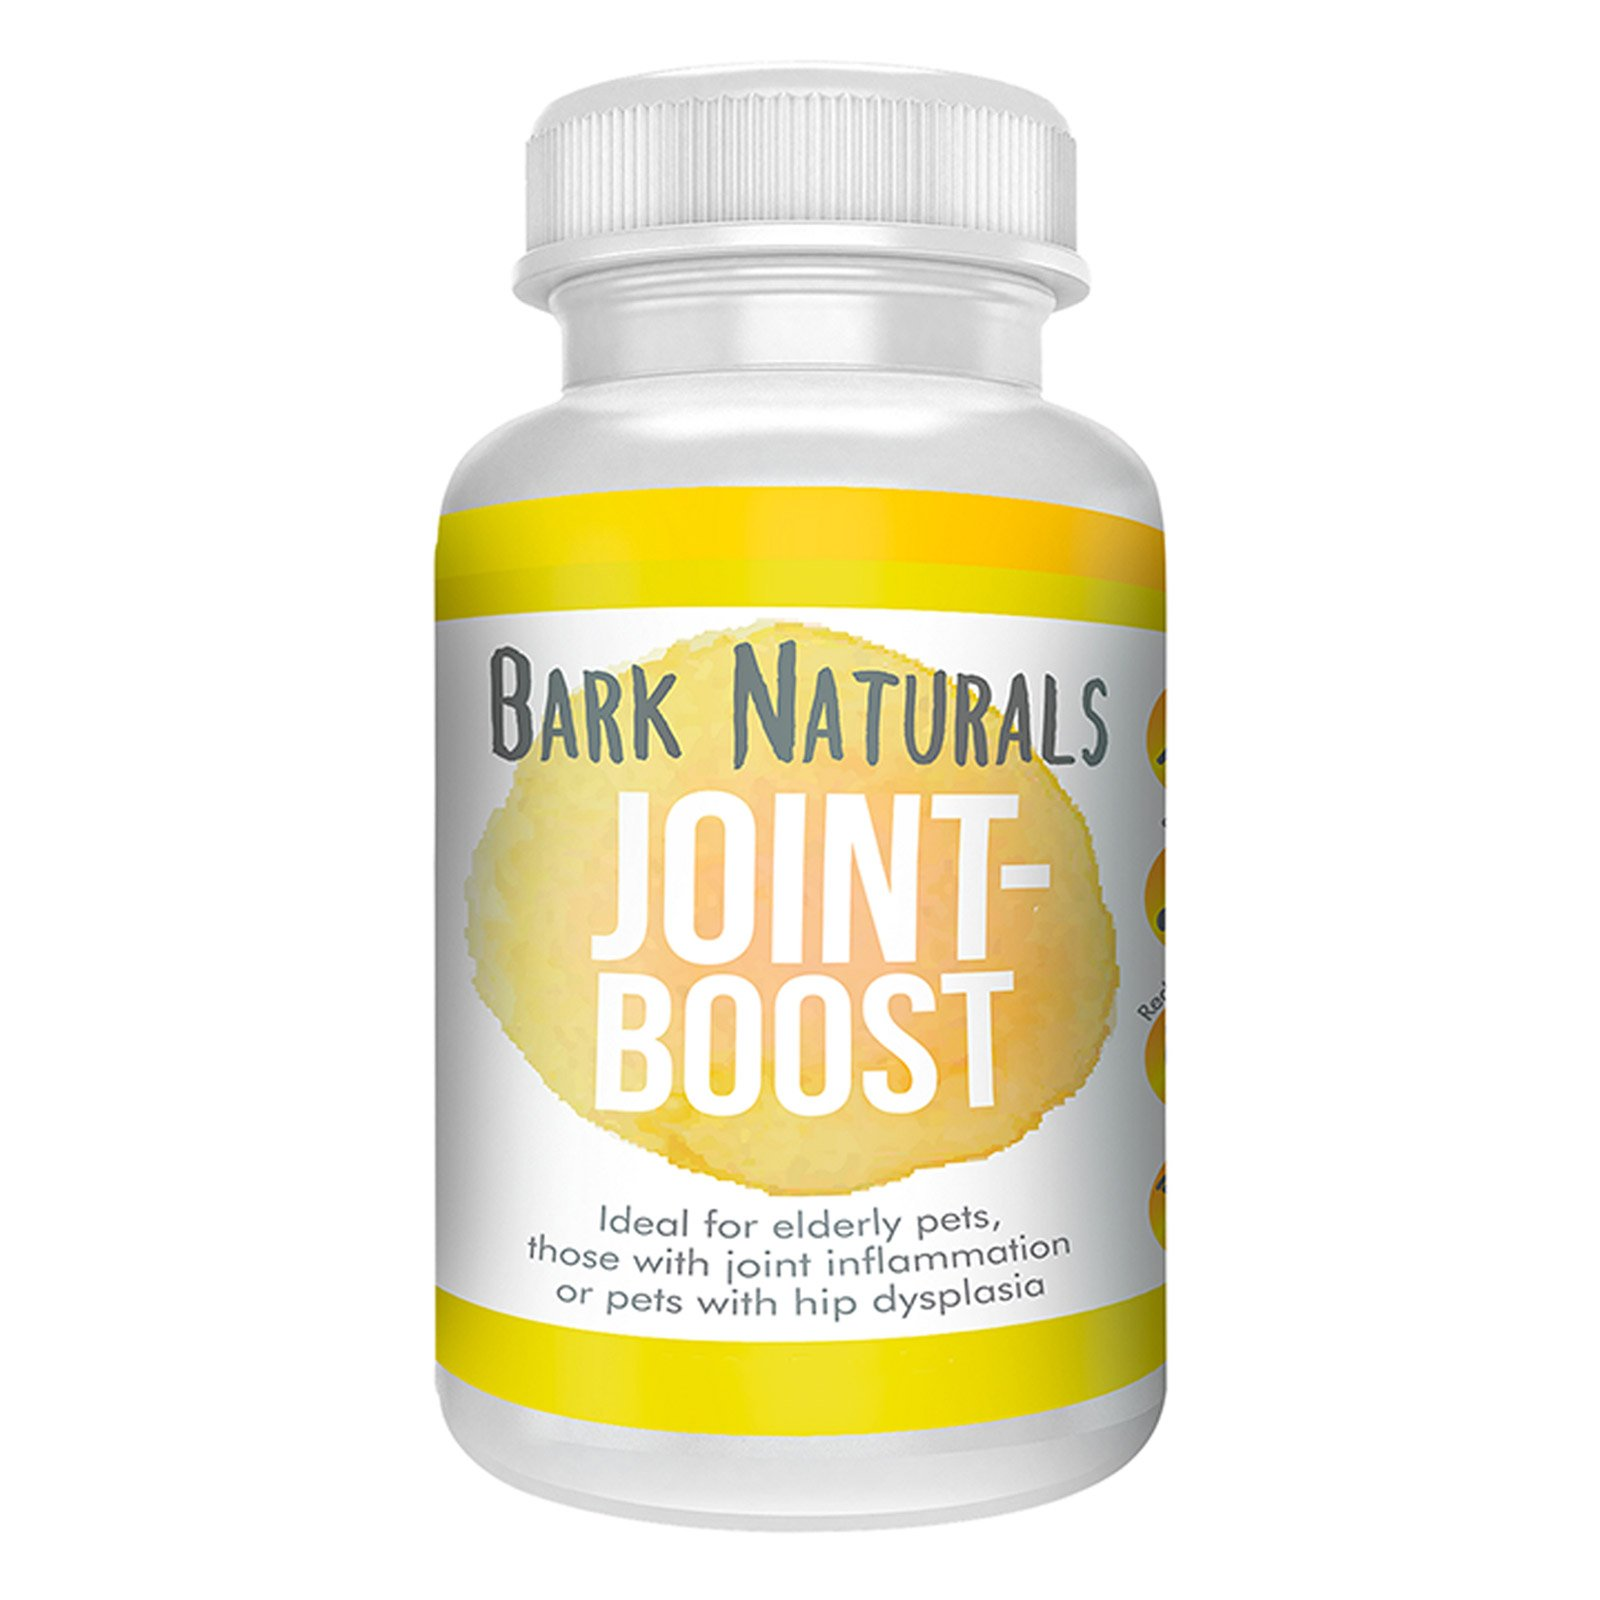 Bark Naturals Joint-Boost Supplement Powder for Dogs